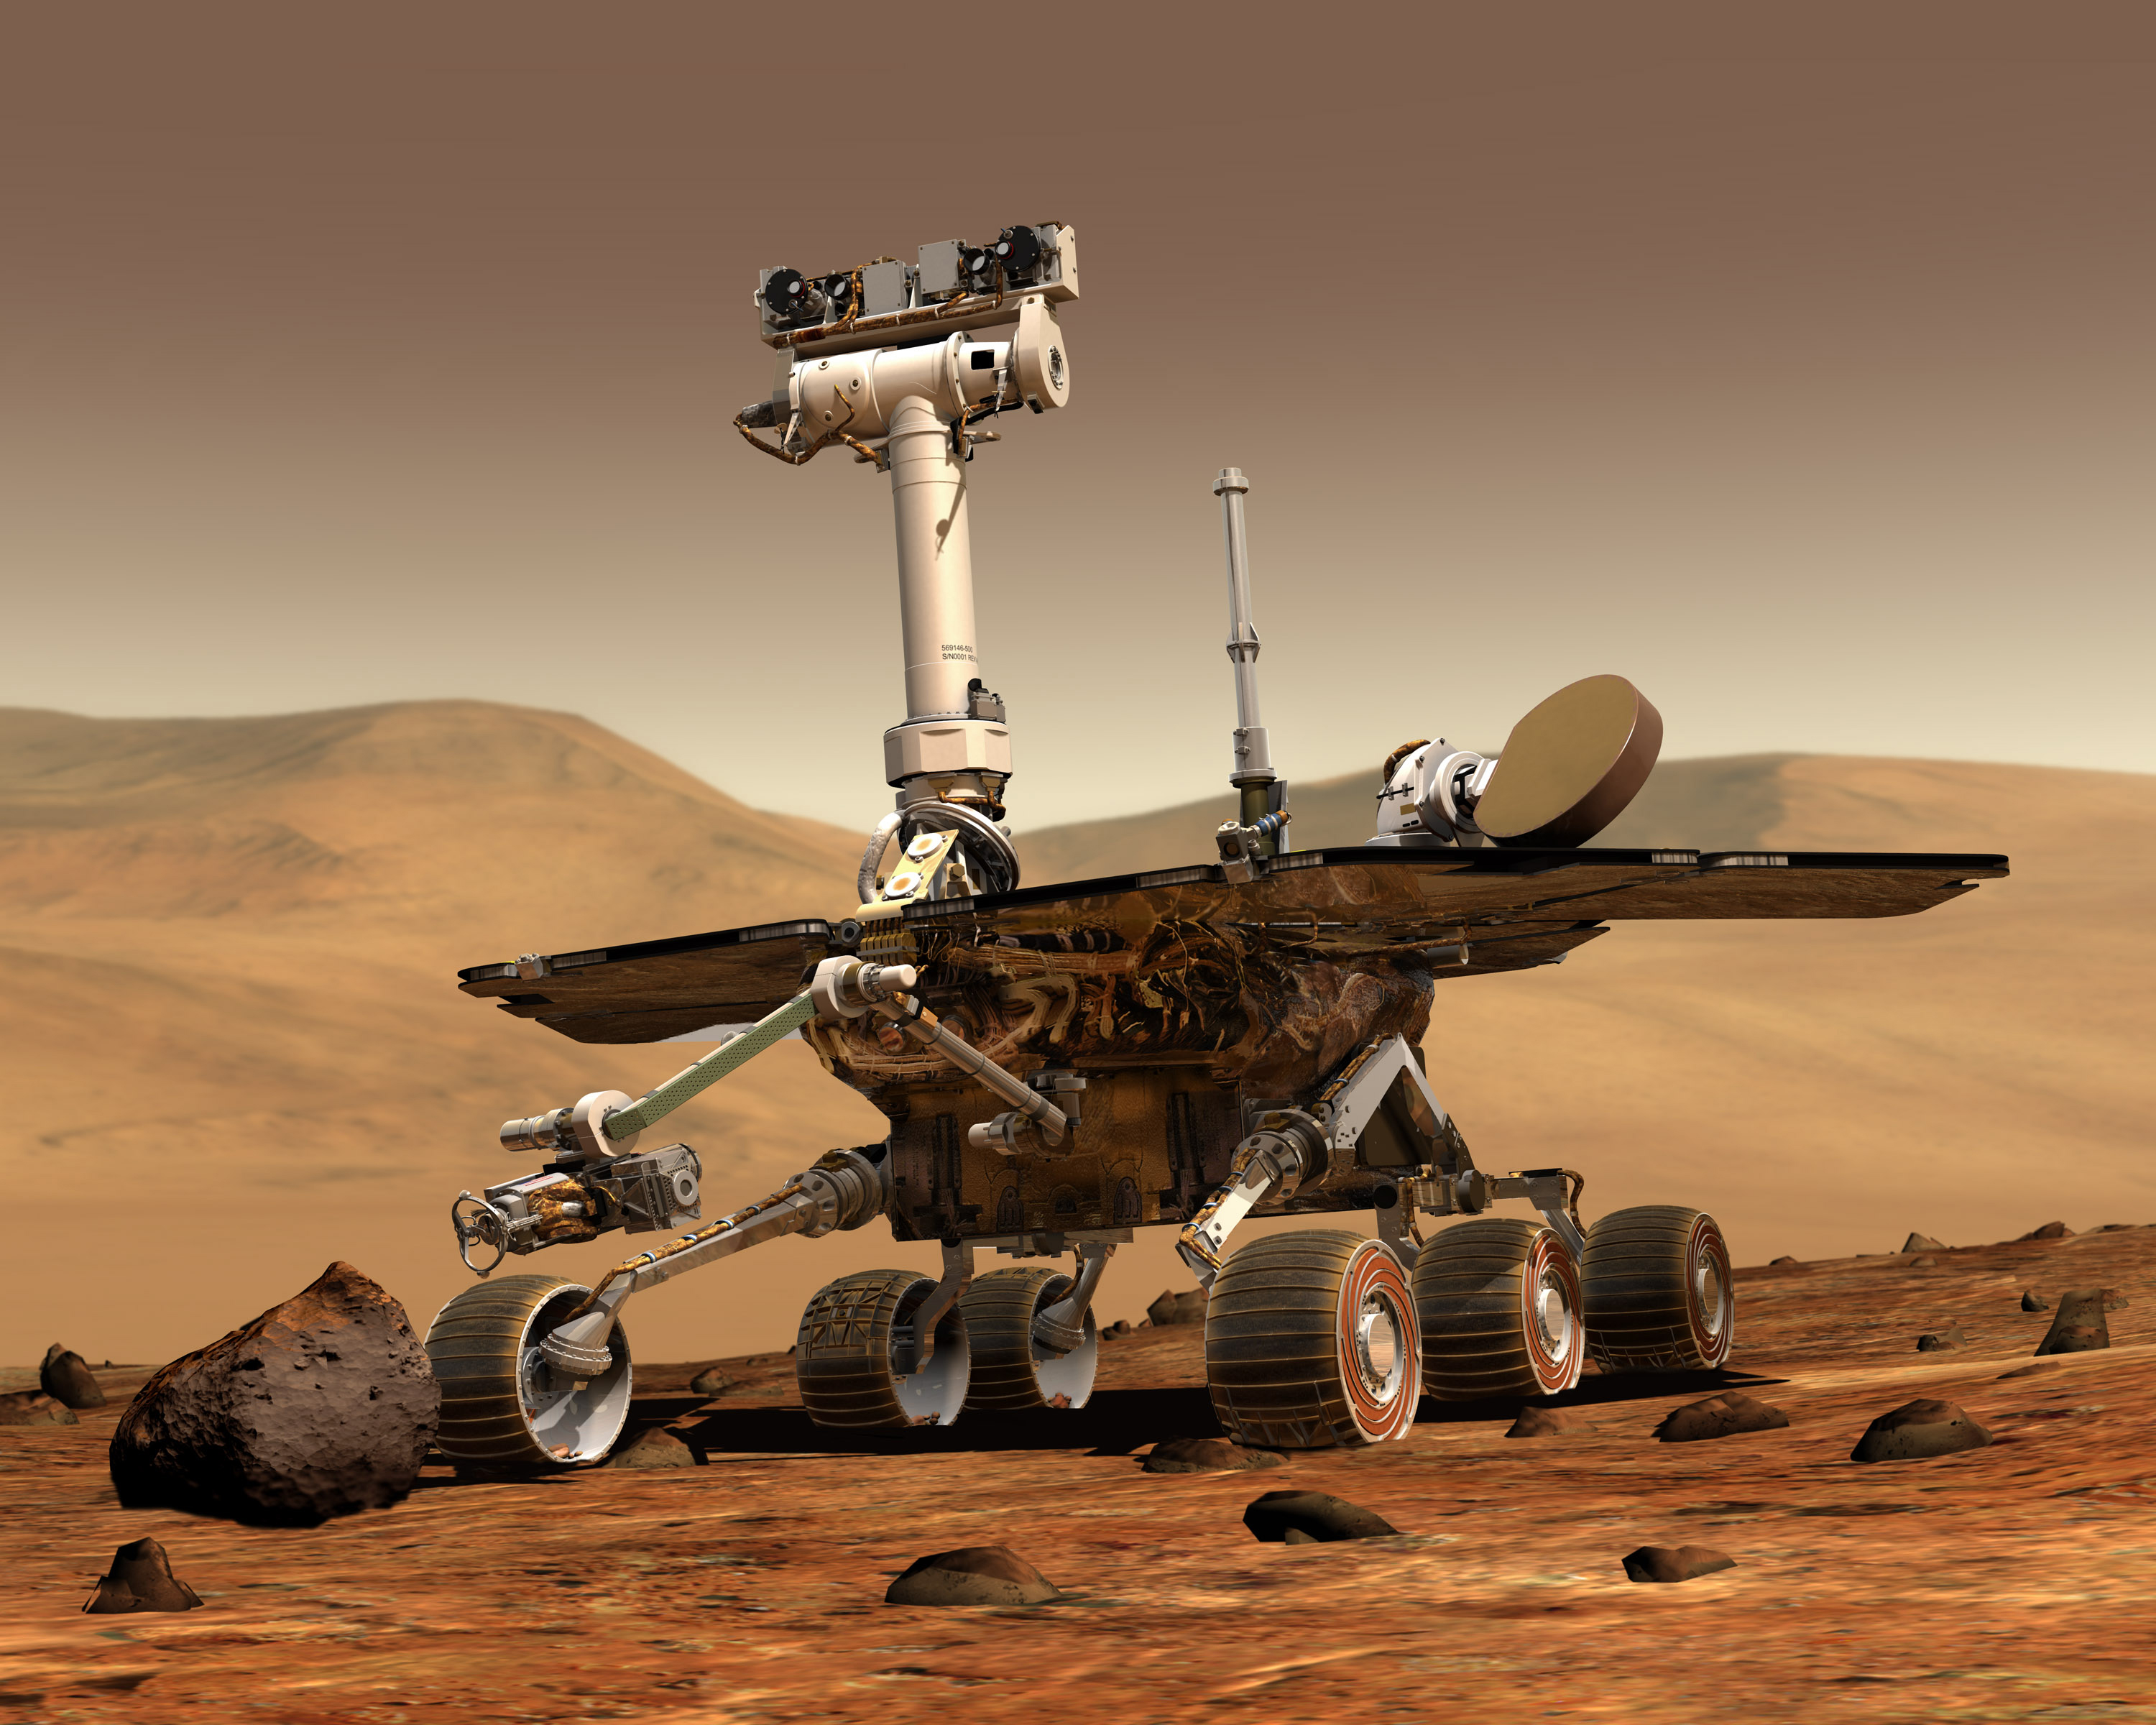 http://marsrovers.jpl.nasa.gov/gallery/artwork/hires/rover3.jpg